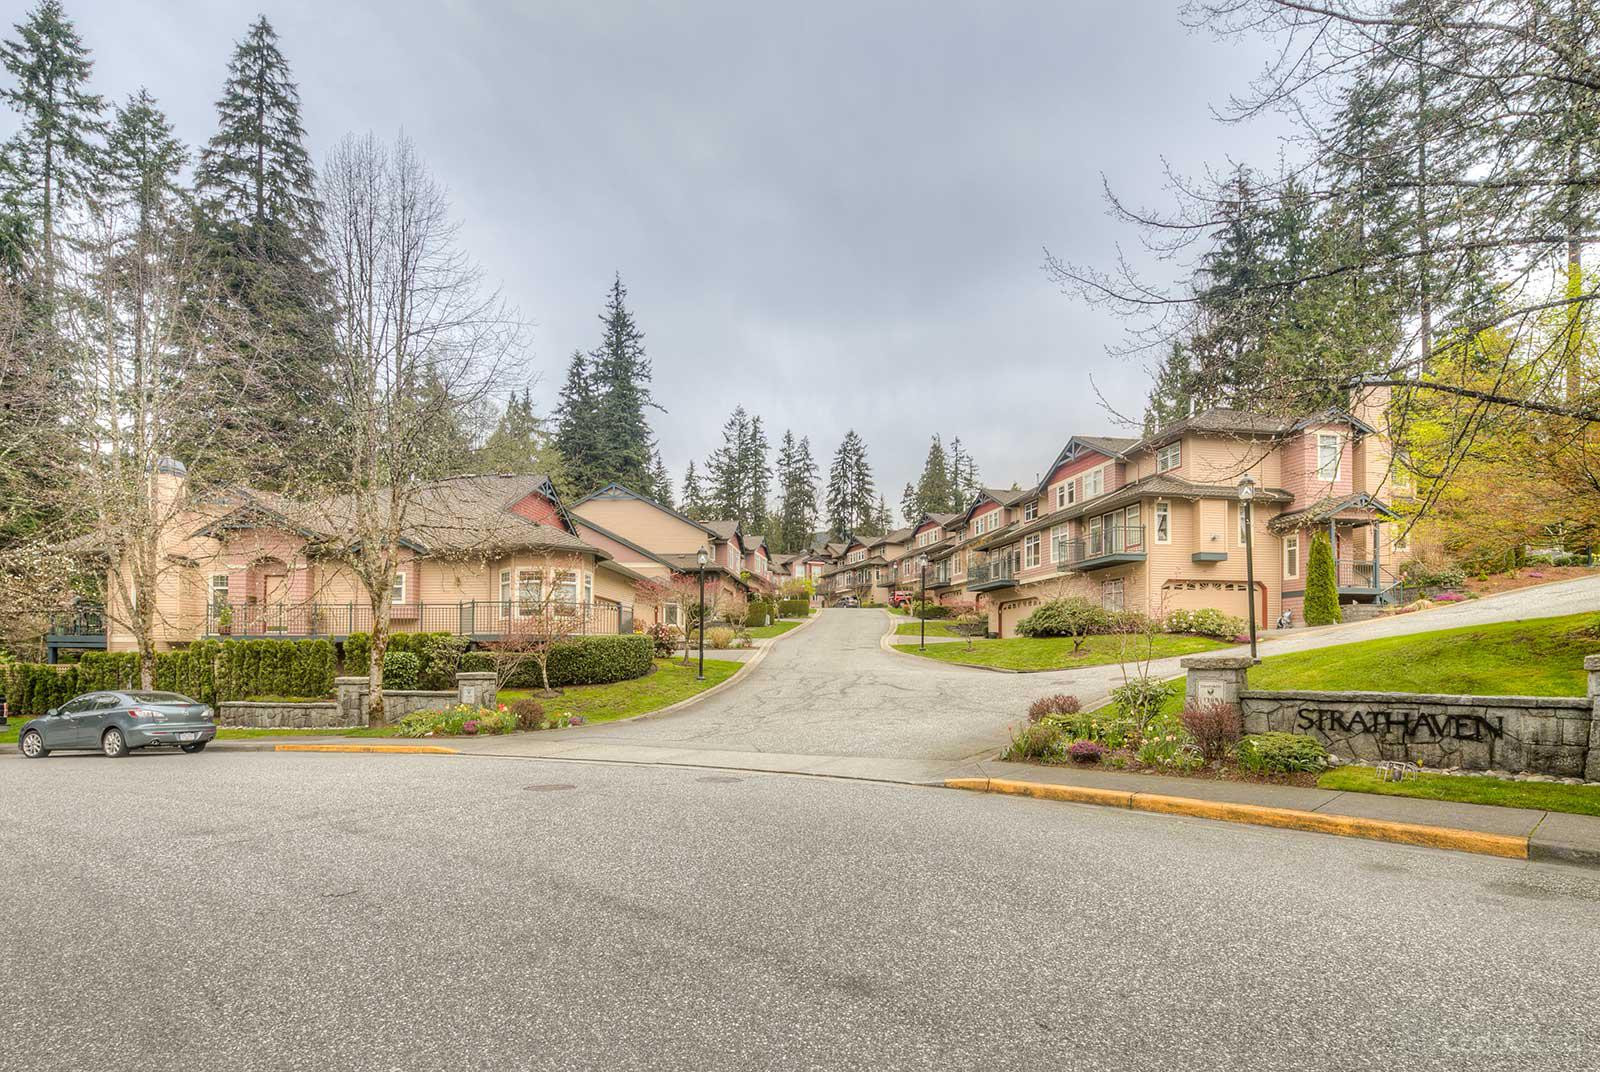 Strathaven at 1144 Strathaven Dr, North Vancouver District 0